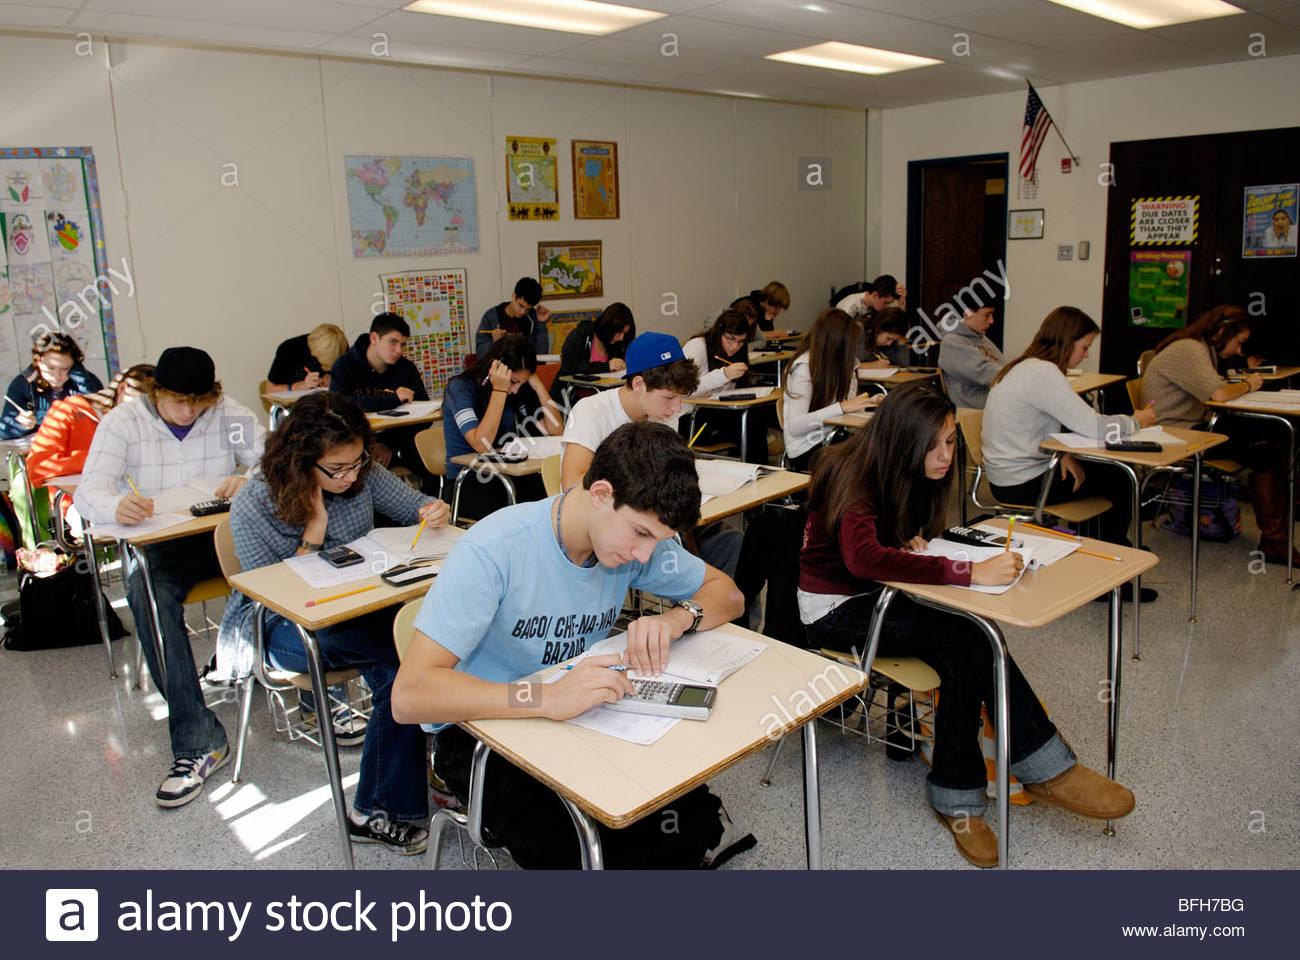 students in high school classroom taking a standardized